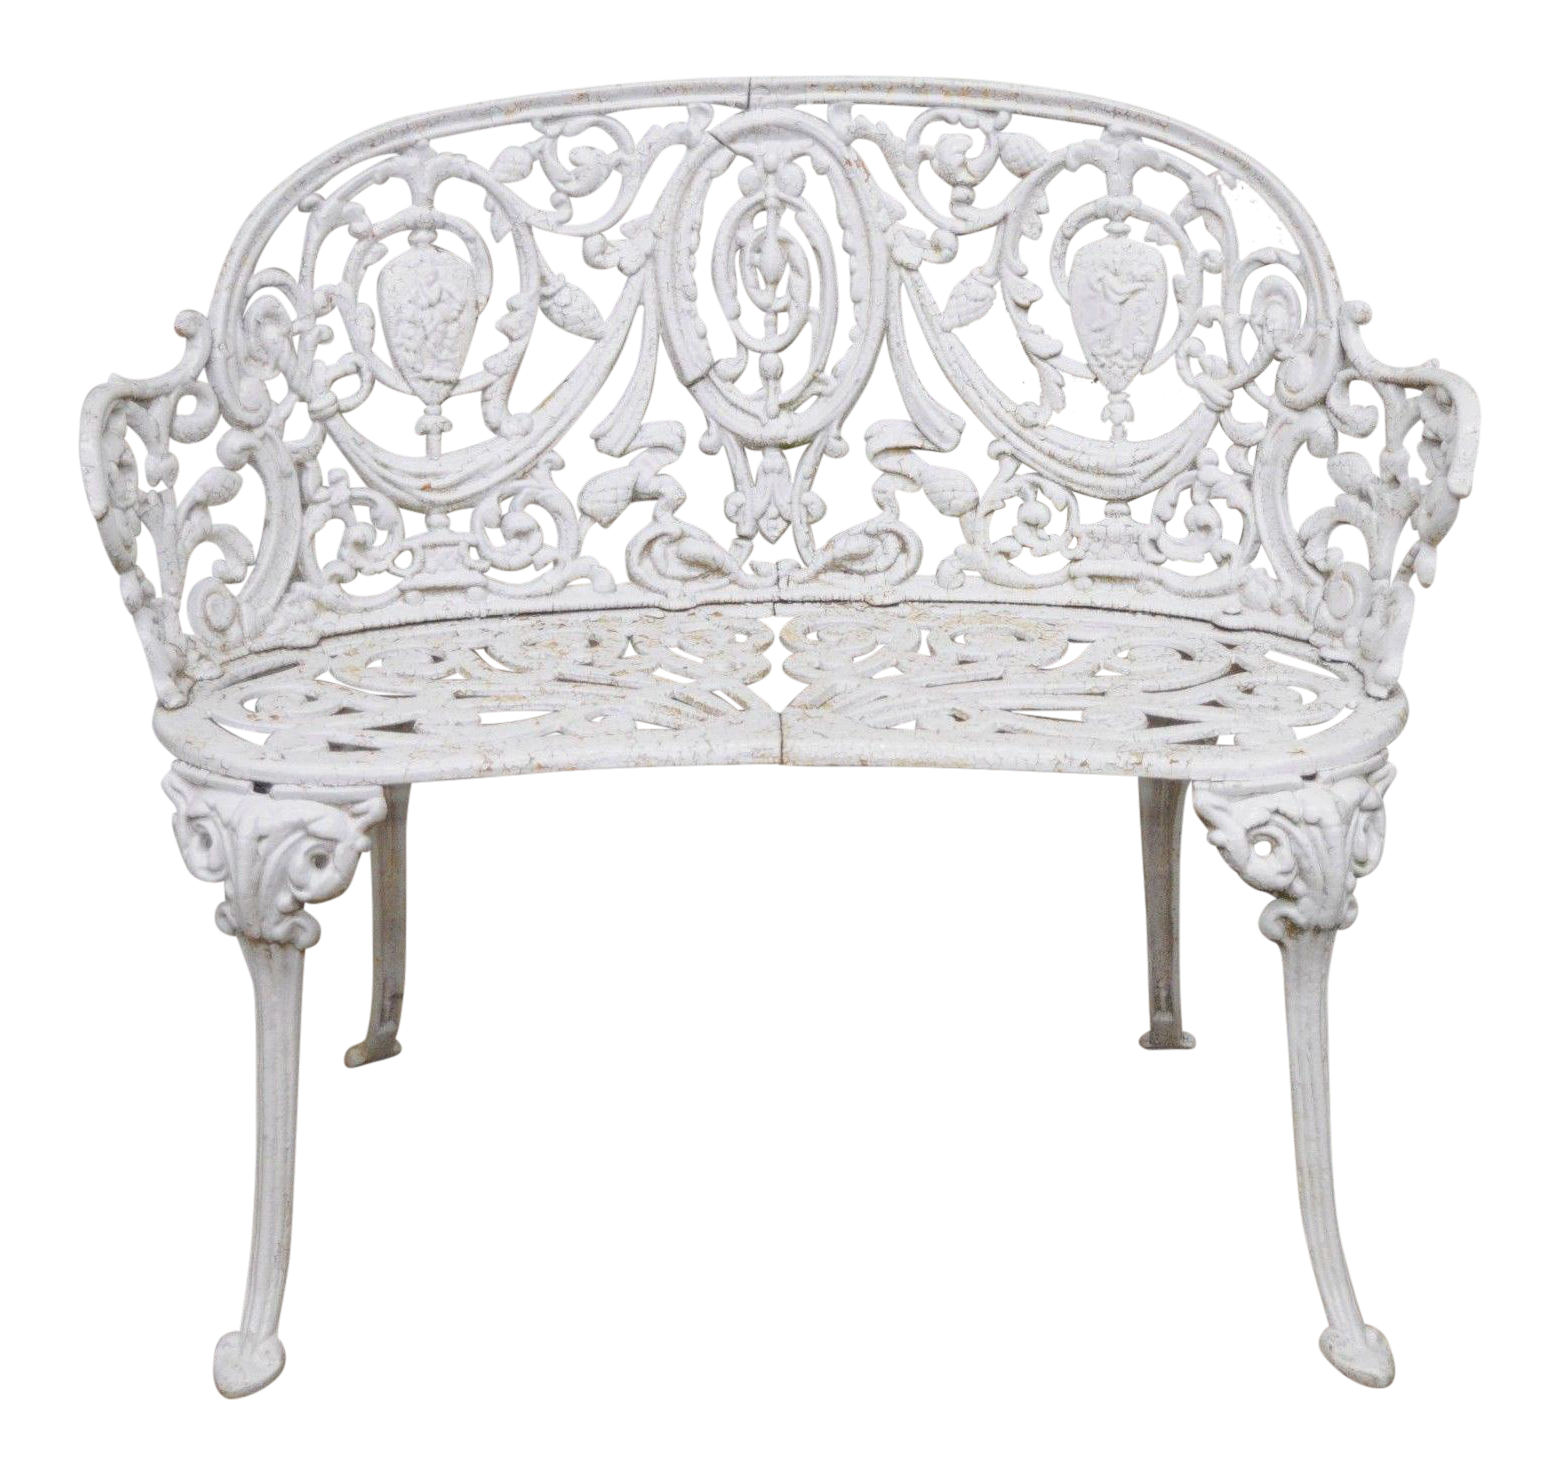 Wondrous Antique Cast Iron Victorian Small Garden Bench French Regency Neoclassical Style Machost Co Dining Chair Design Ideas Machostcouk